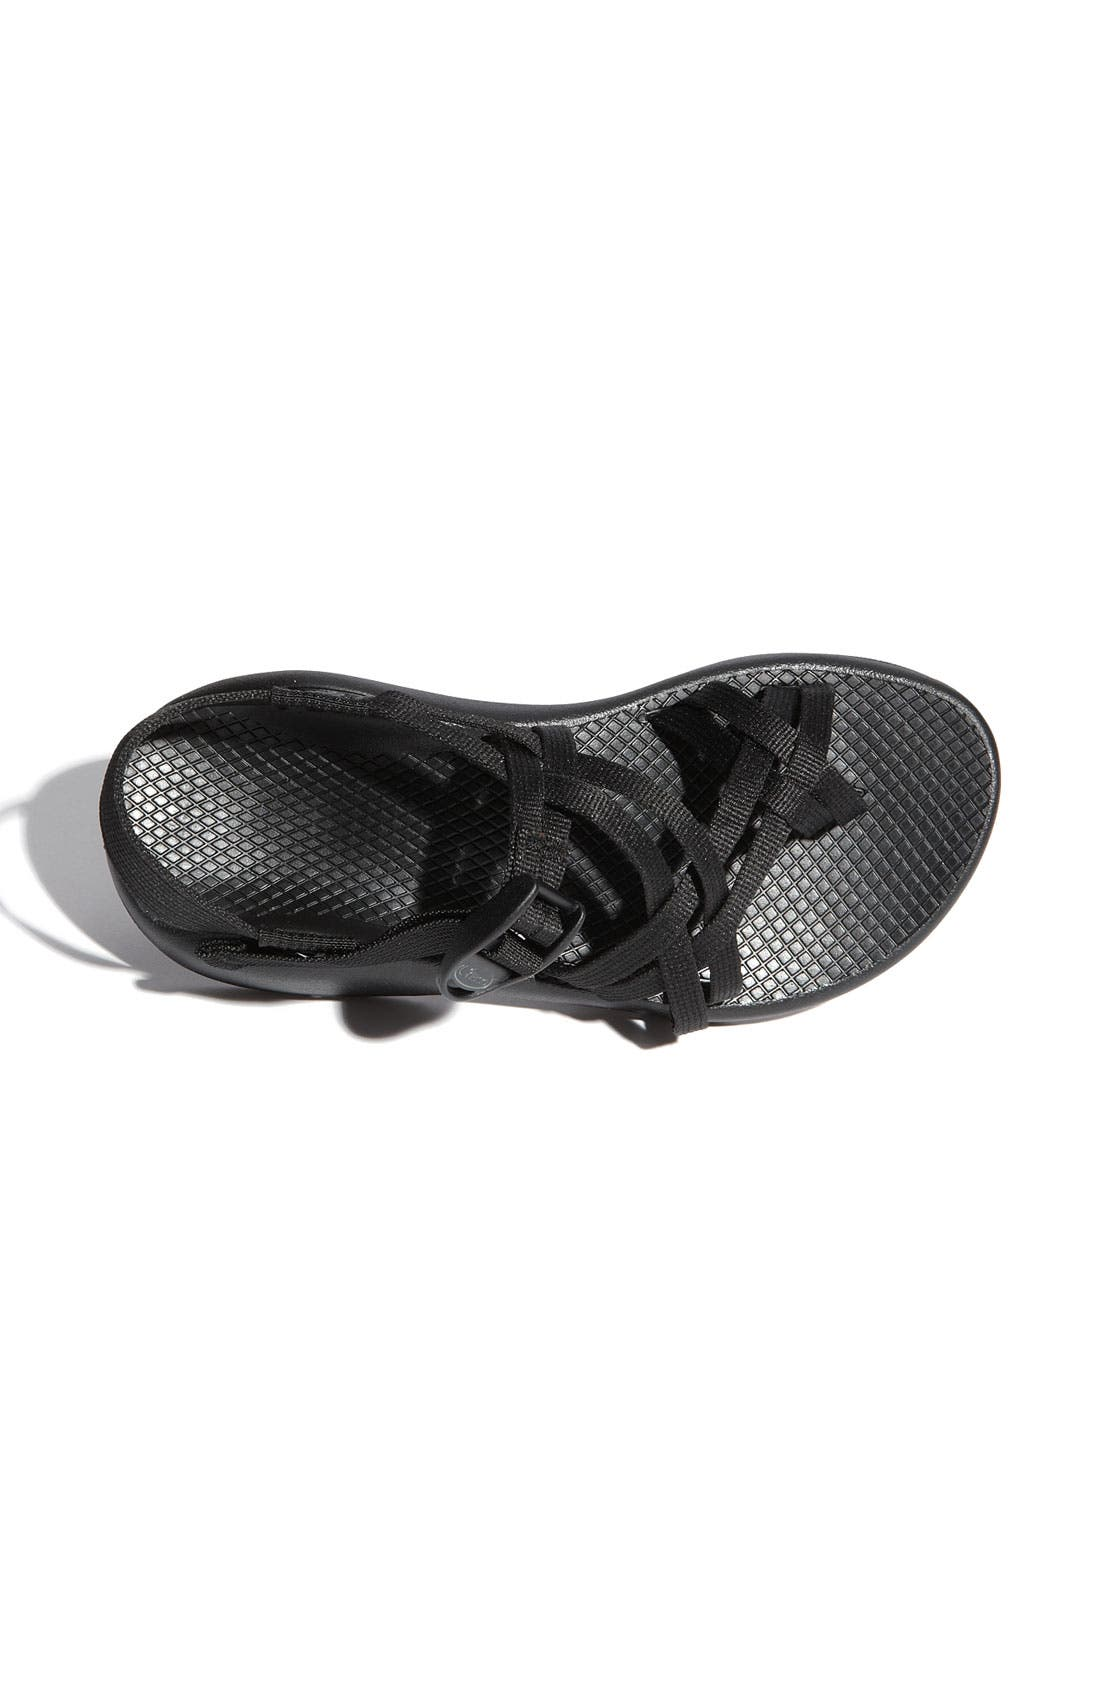 Alternate Image 3  - Chaco 'ZX2' Water Sandal